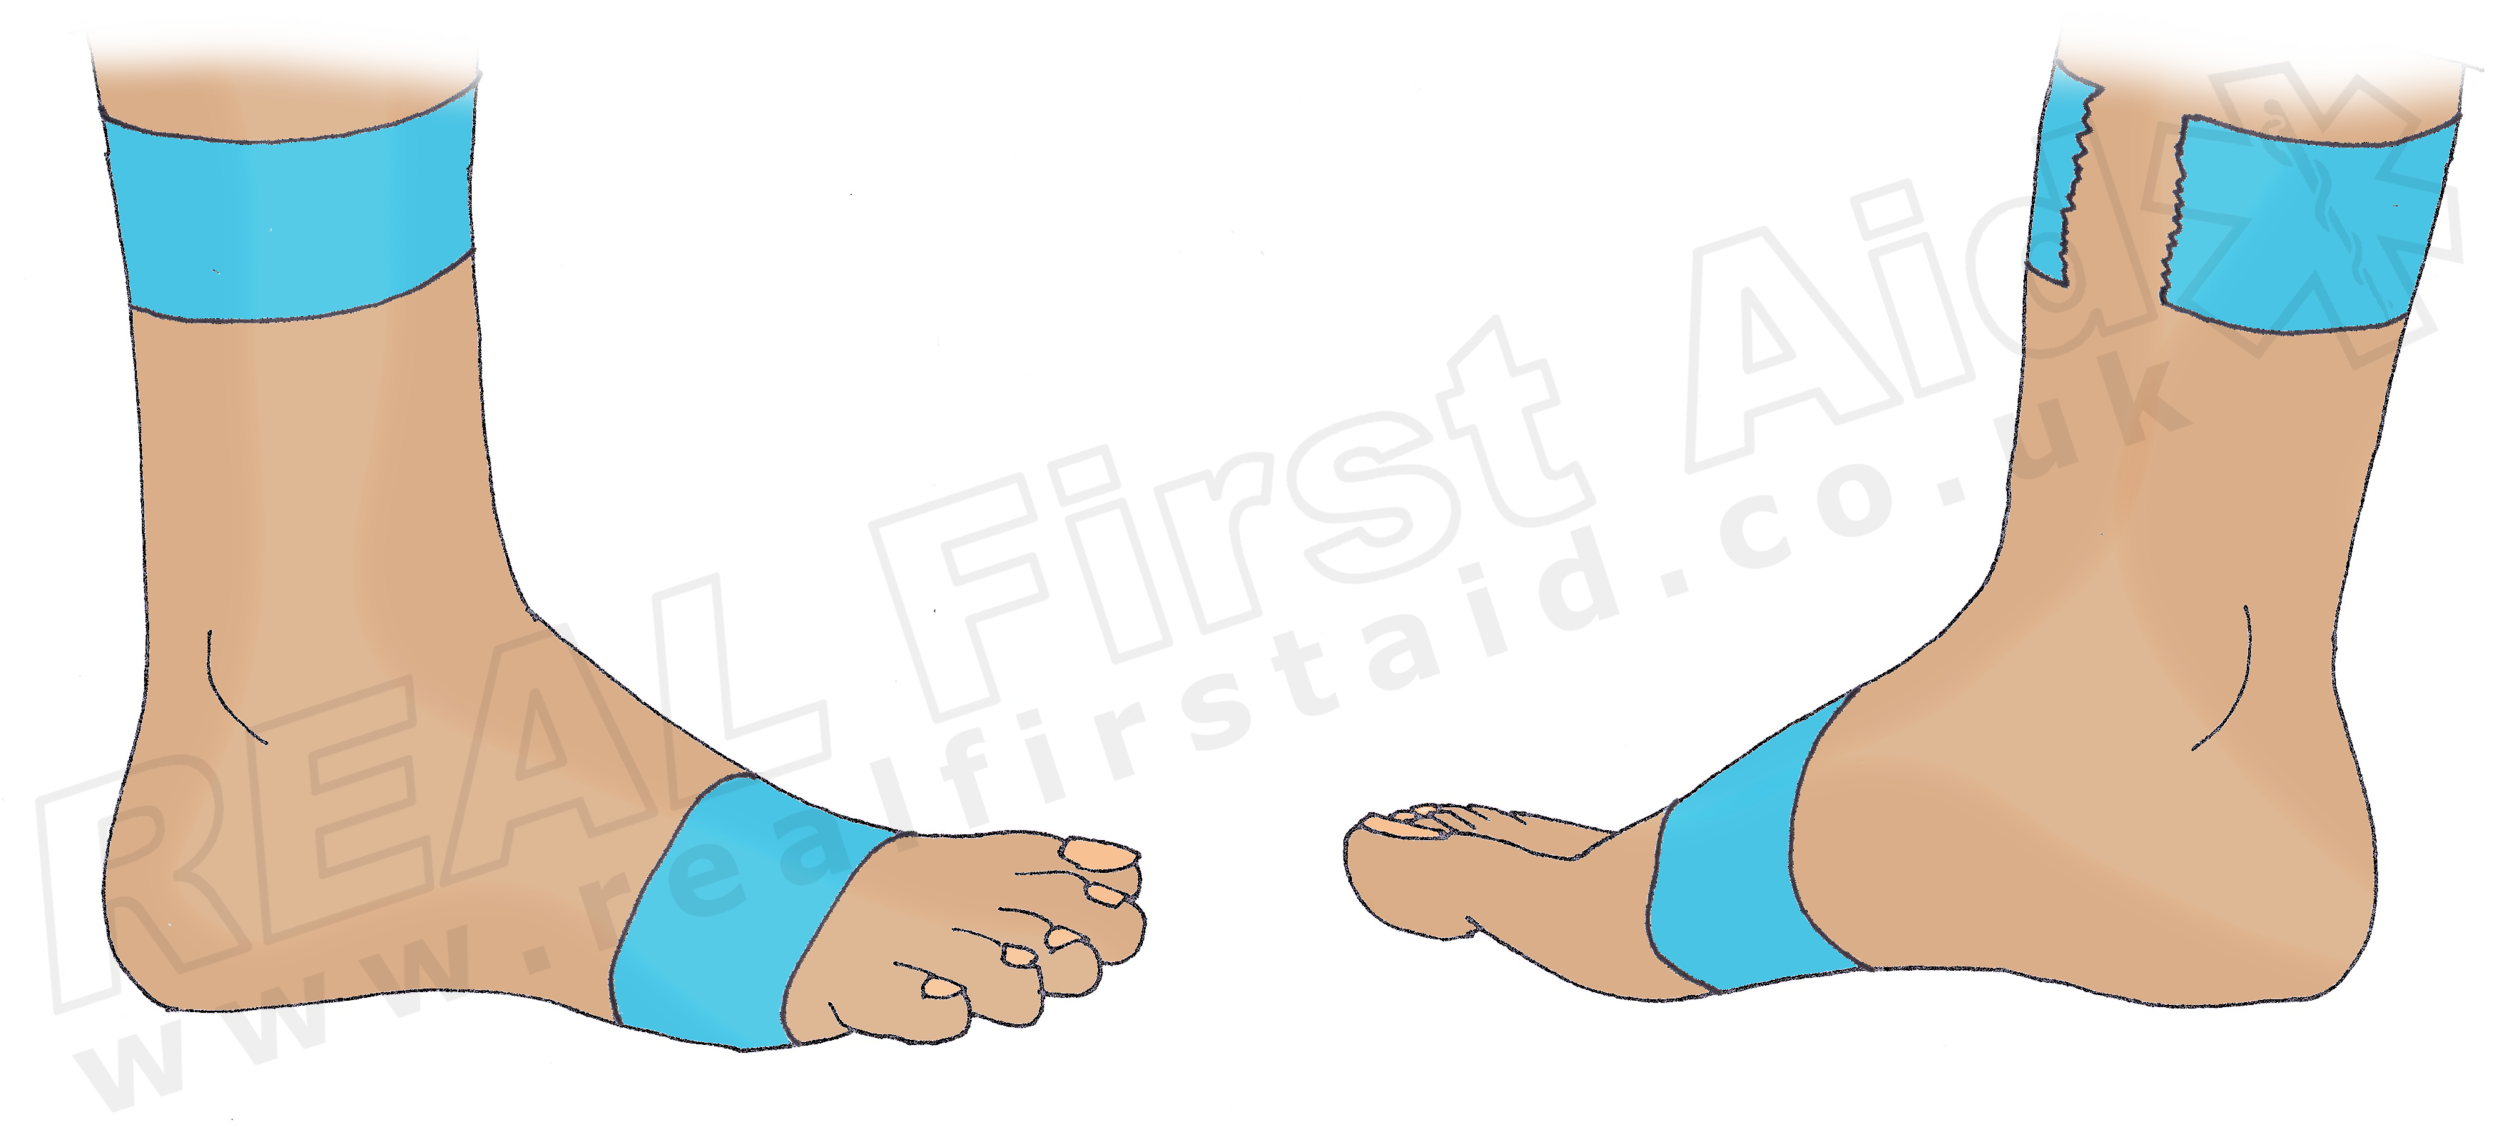 1. Place a strip of tape around the forefoot and around the mid-calf. Do not go around the mid-calf completely.